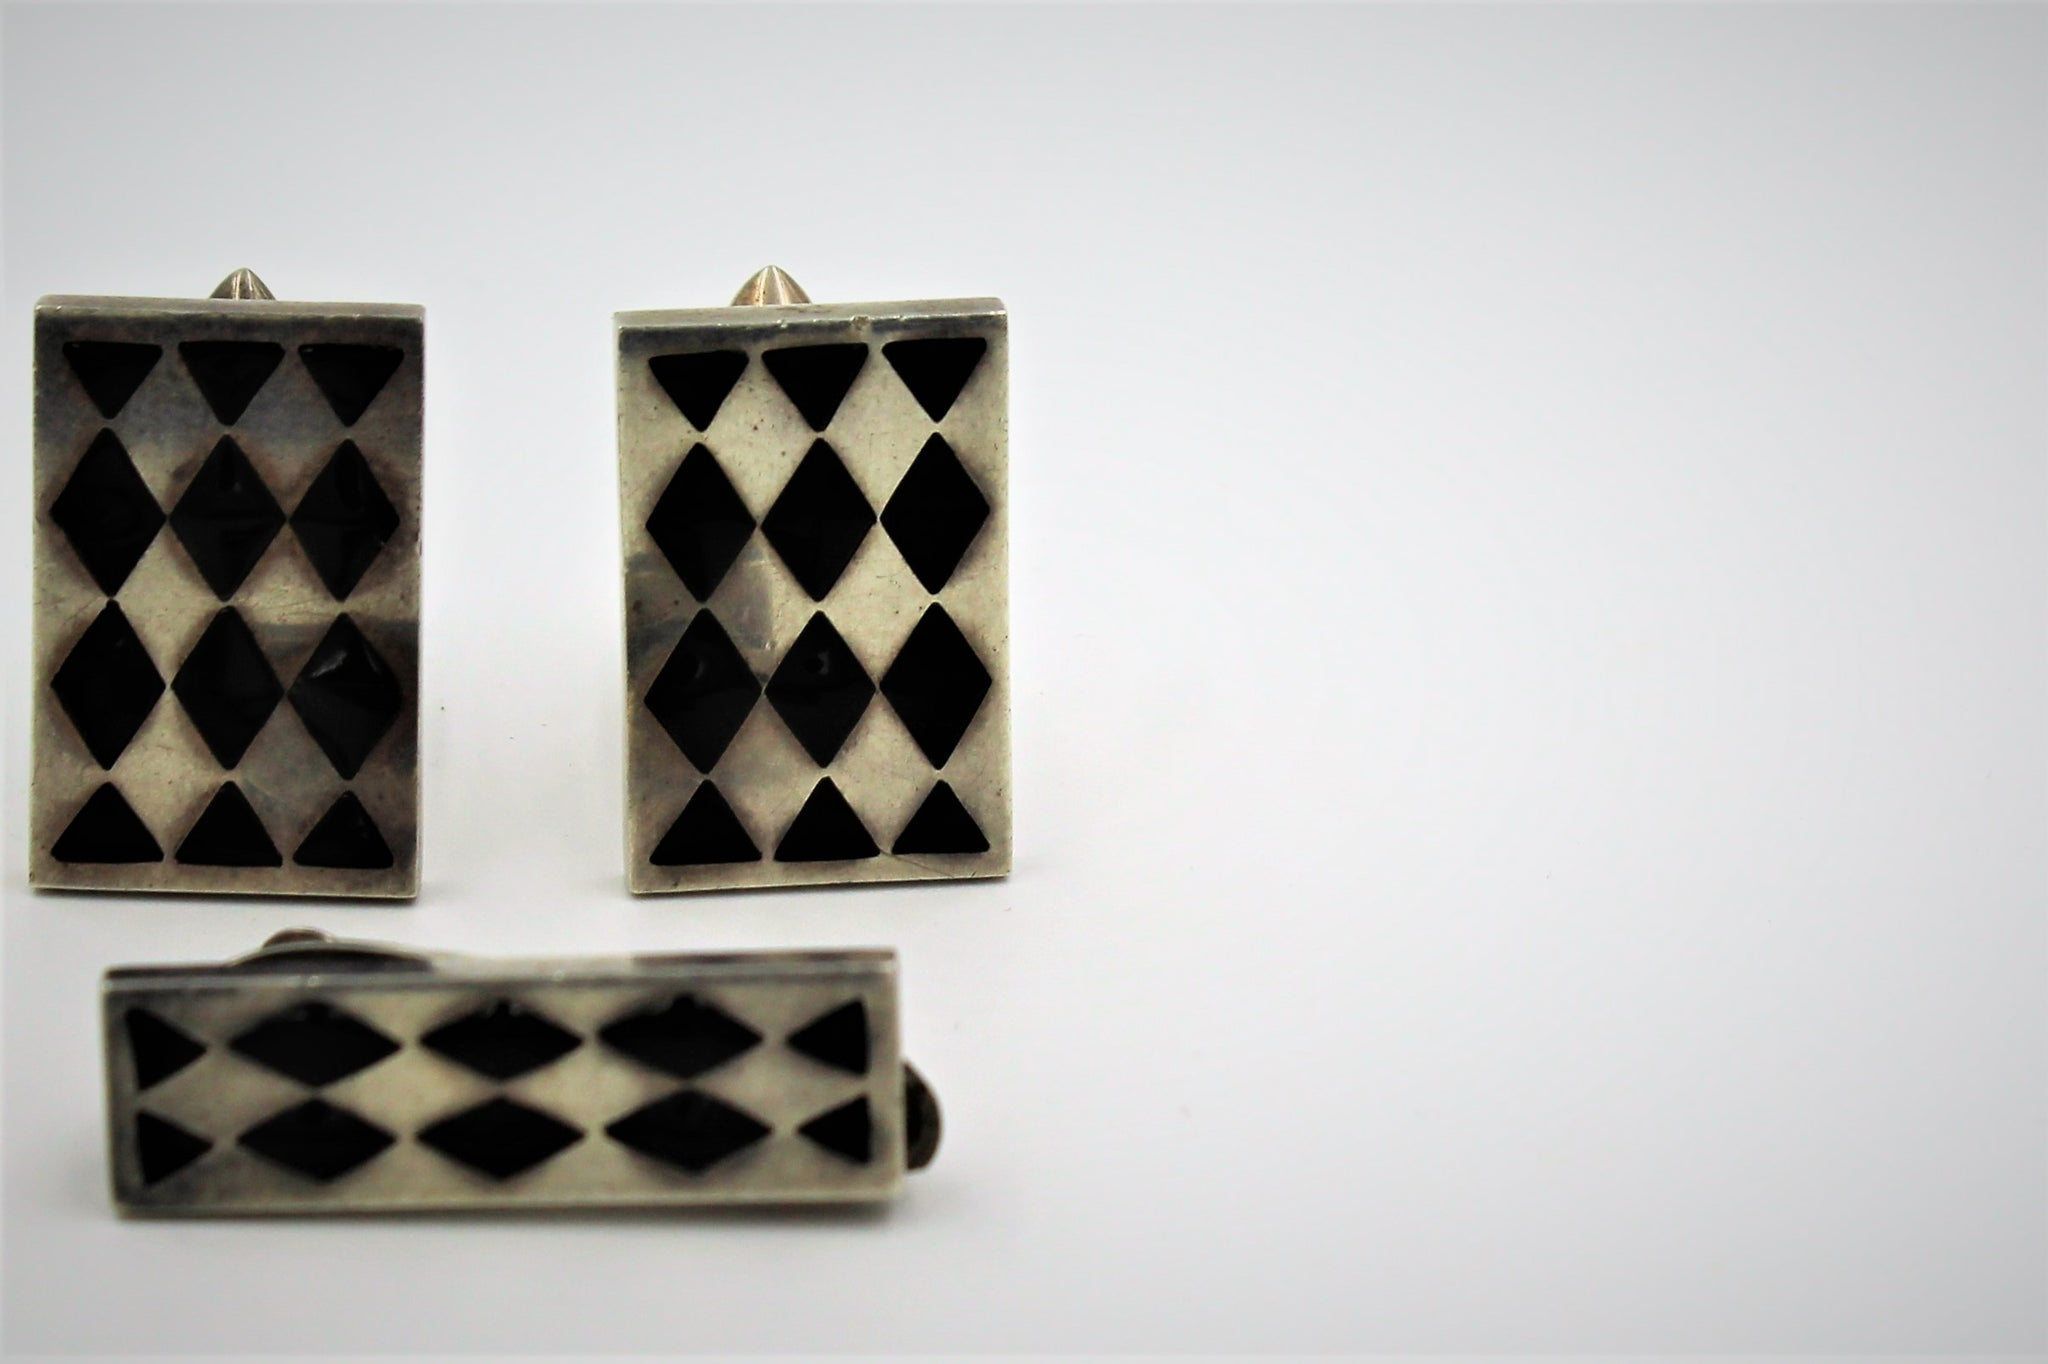 Cuff Links and Tie Bar by Antonio Pineda